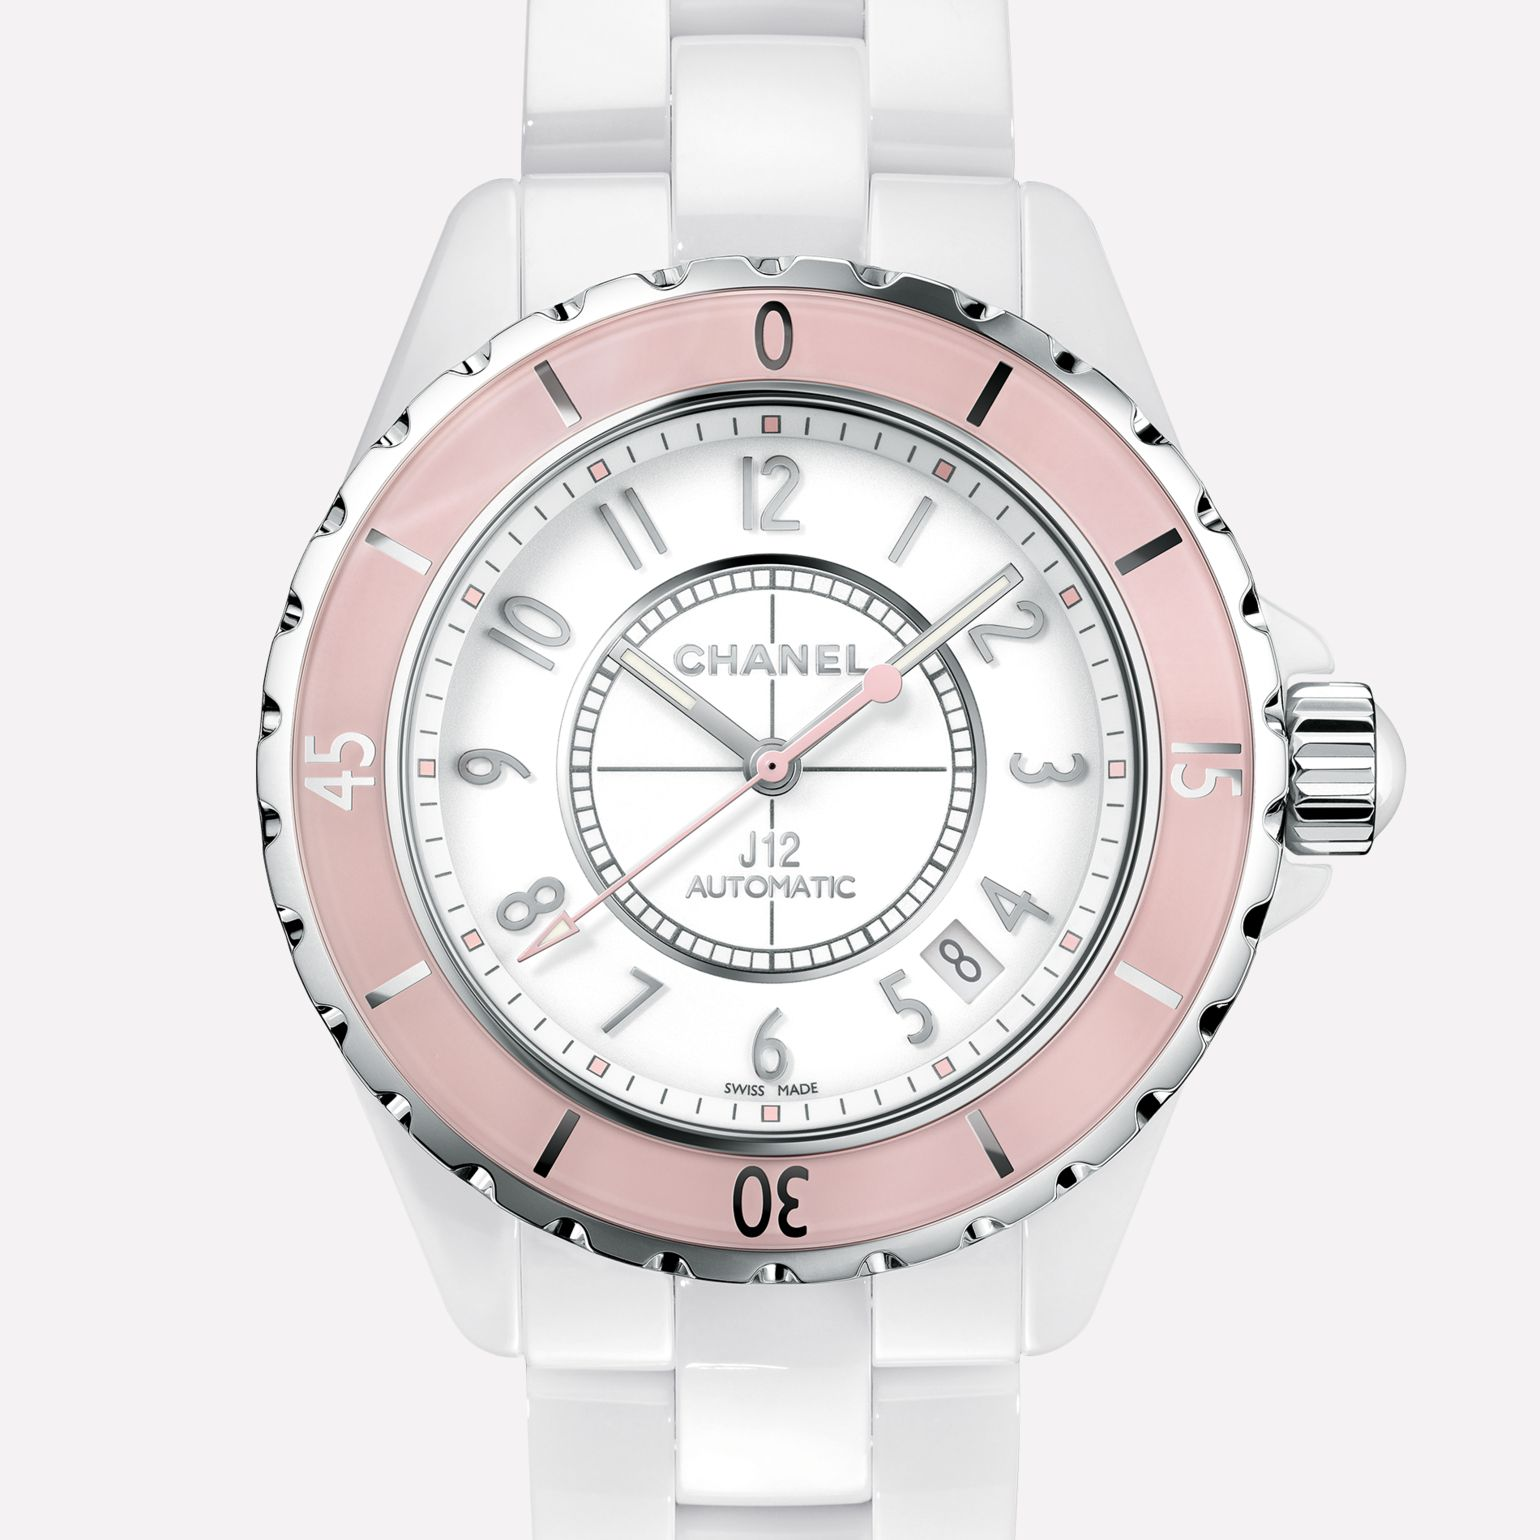 J12 Soft Rose Watch White ceramic and steel, pink bezel